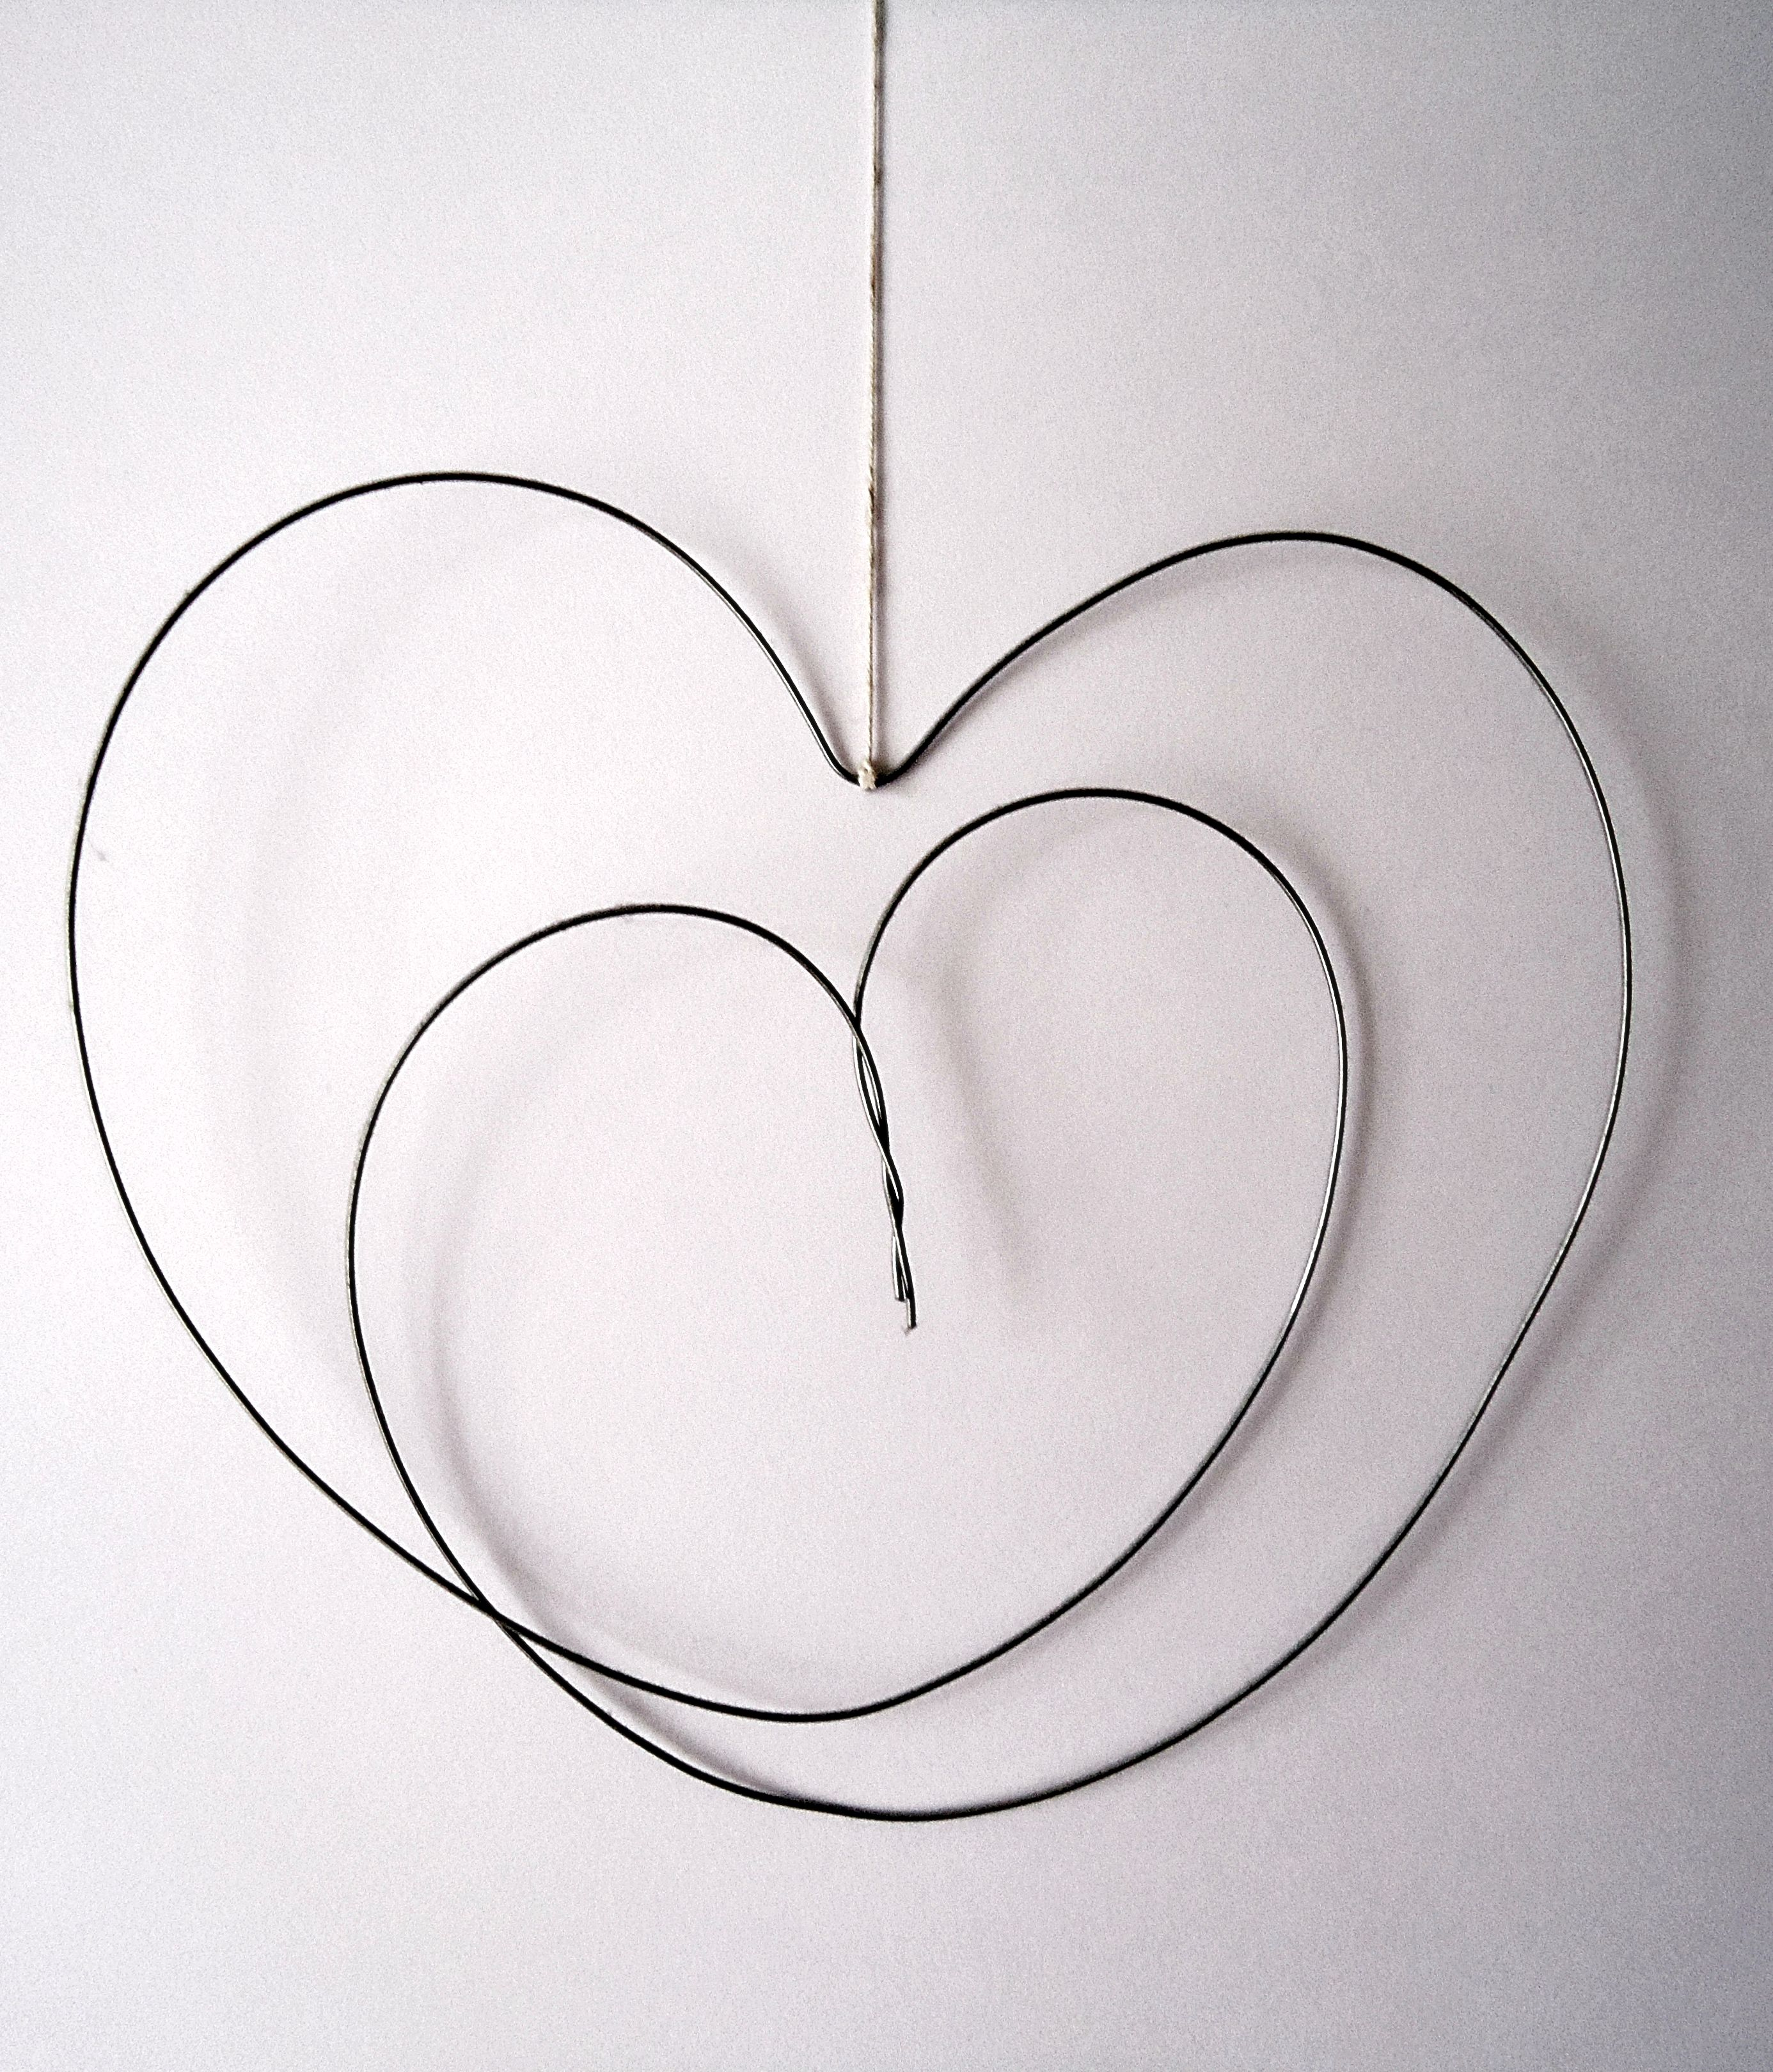 wire heart made from a hanger - cute and simple valentine decor ...